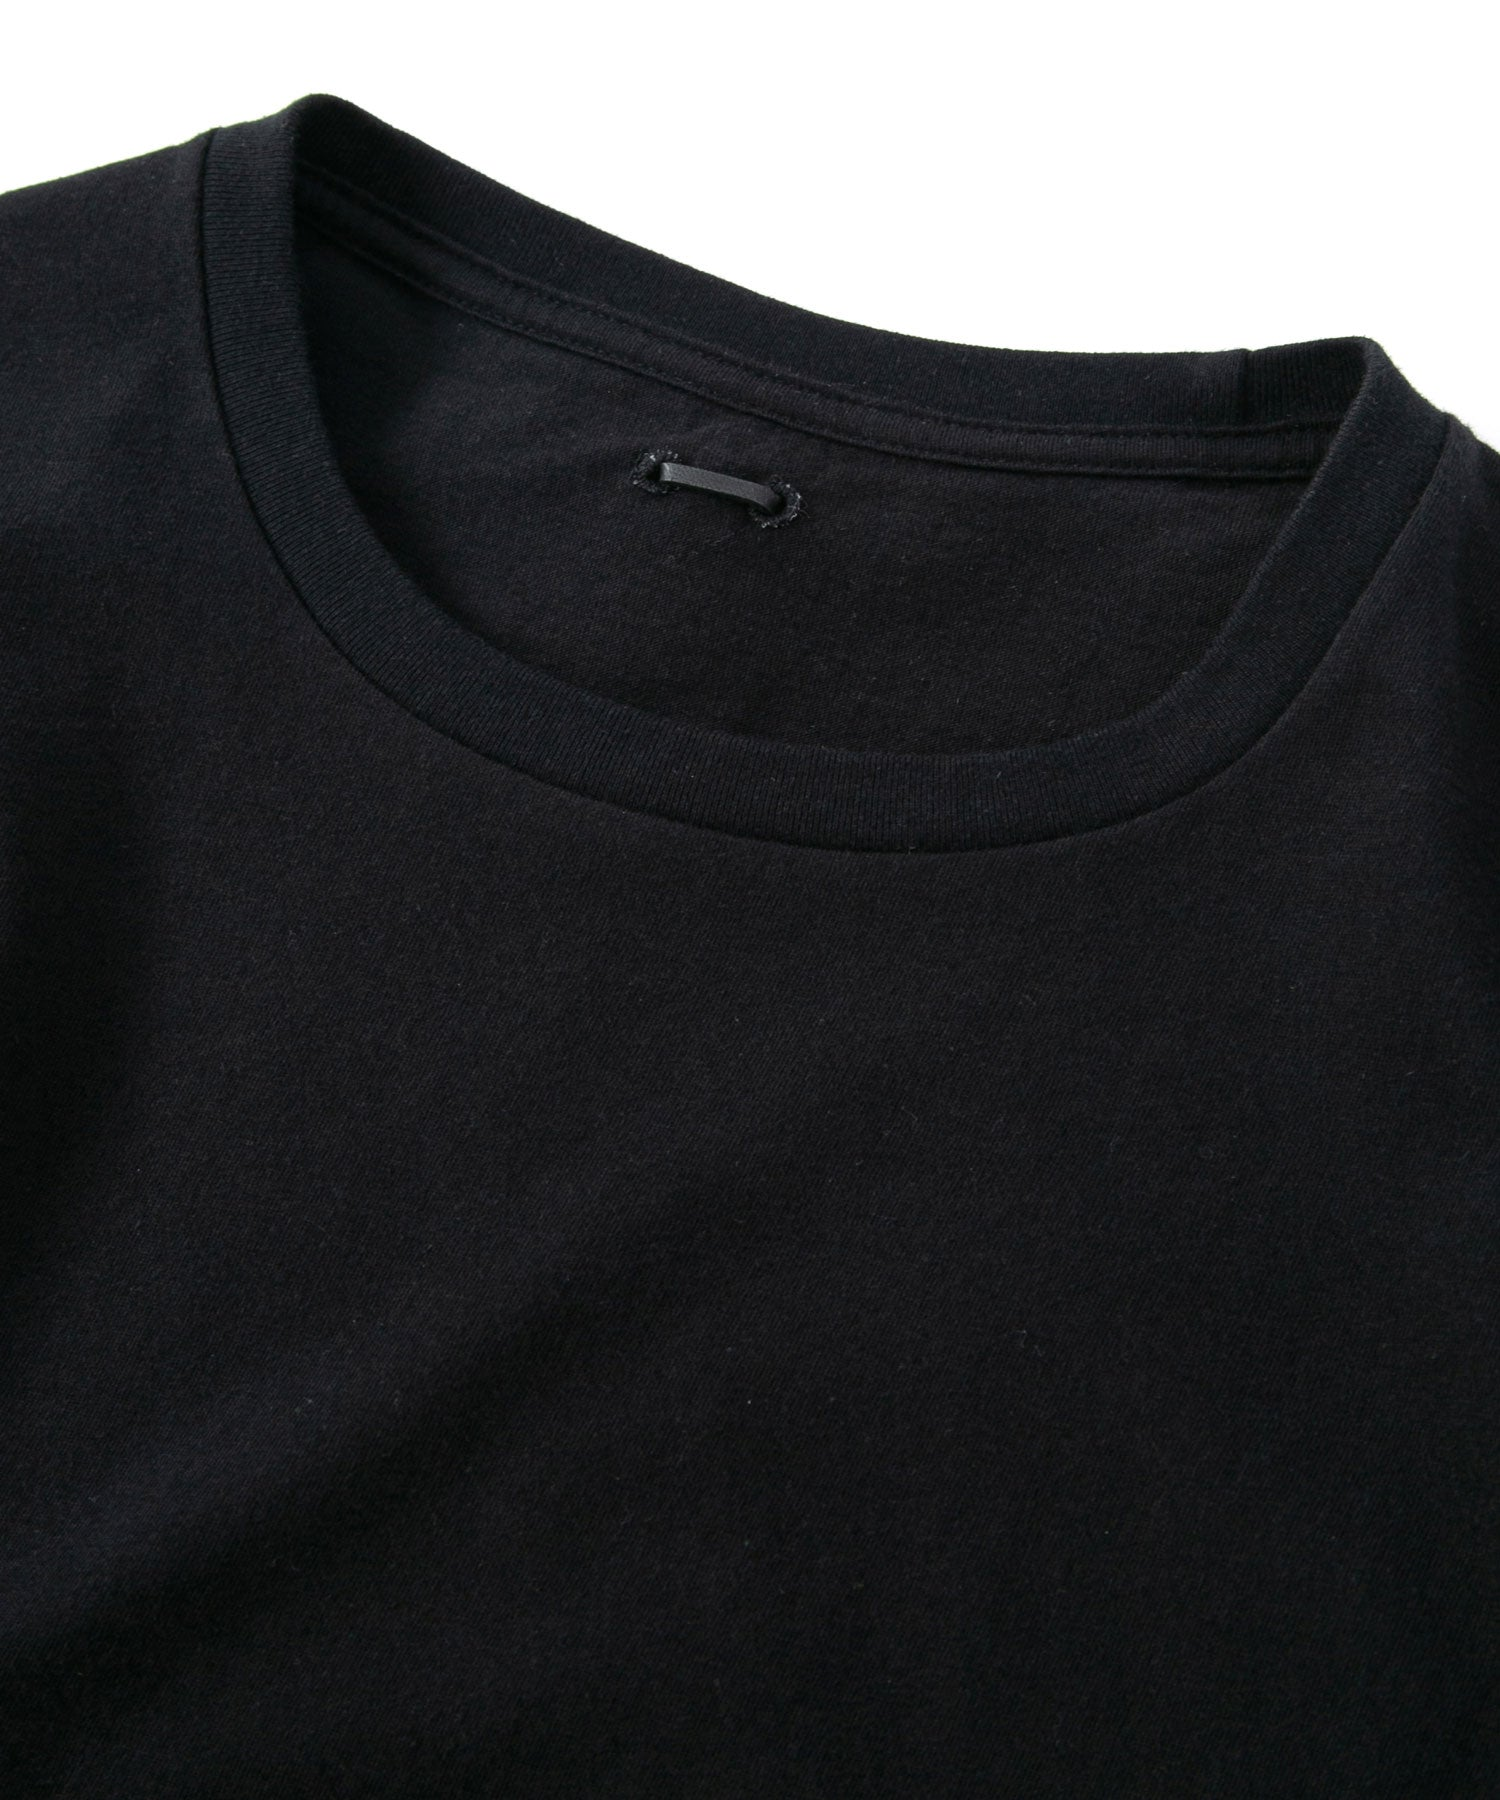 Load image into Gallery viewer, Natural Soft Cotton Plain Stitches Crew Neck Wide Long T-Shirt / BLACK